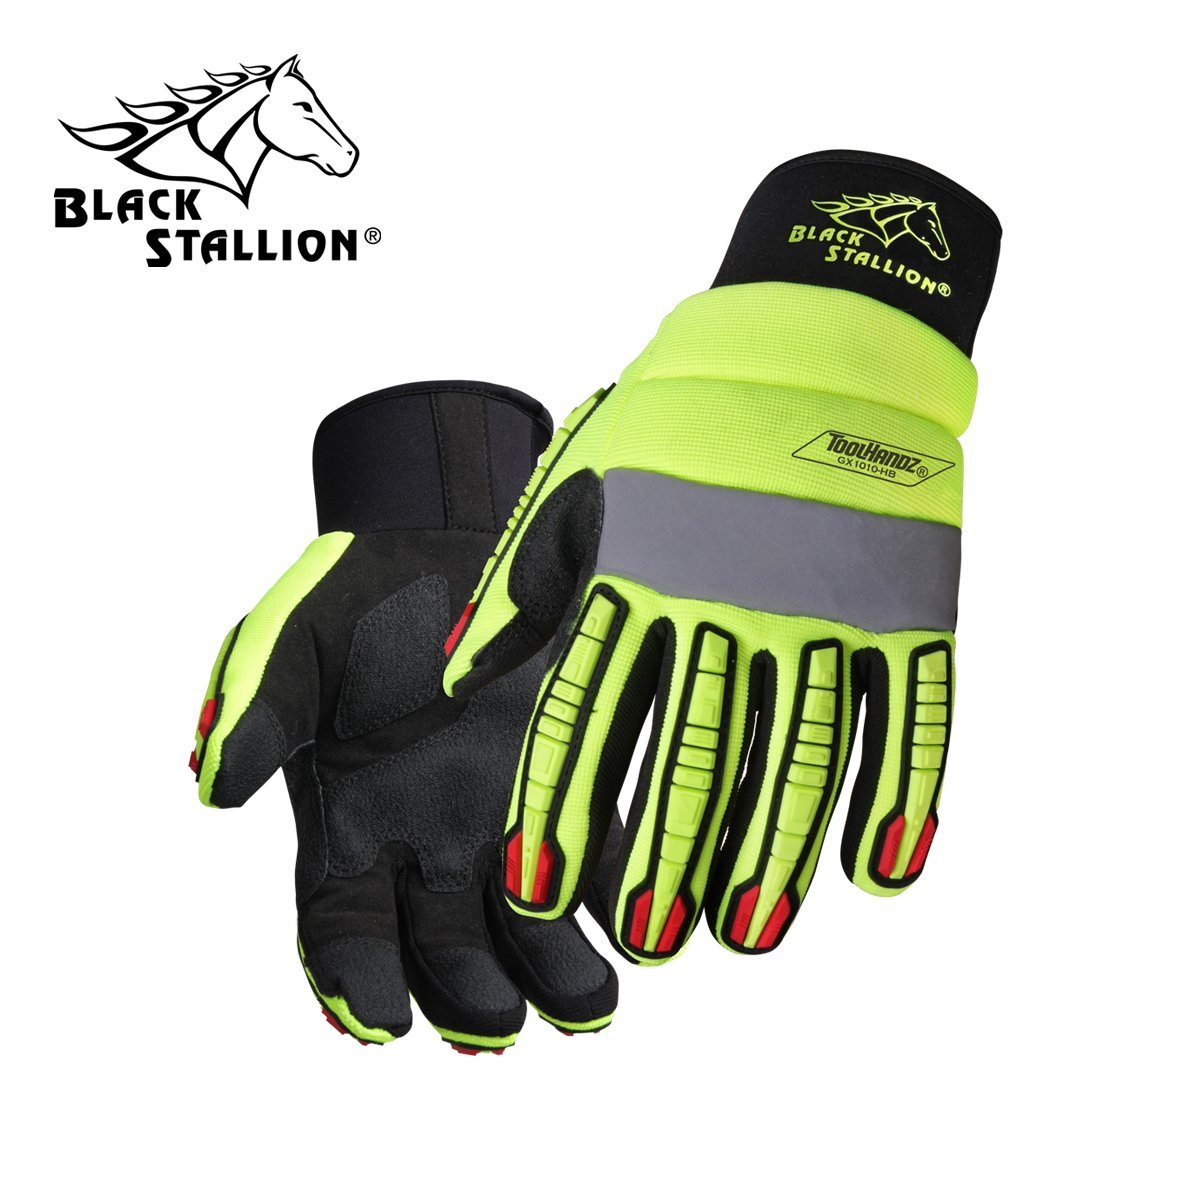 REVCO BLACK STALLION - GX1010-HB TOOLHANDZ HI-VIS SYNTHETIC LEATHER MECHANIC'S GLOVES - SIZE: LARGE - CASE OF: 120 PAIR